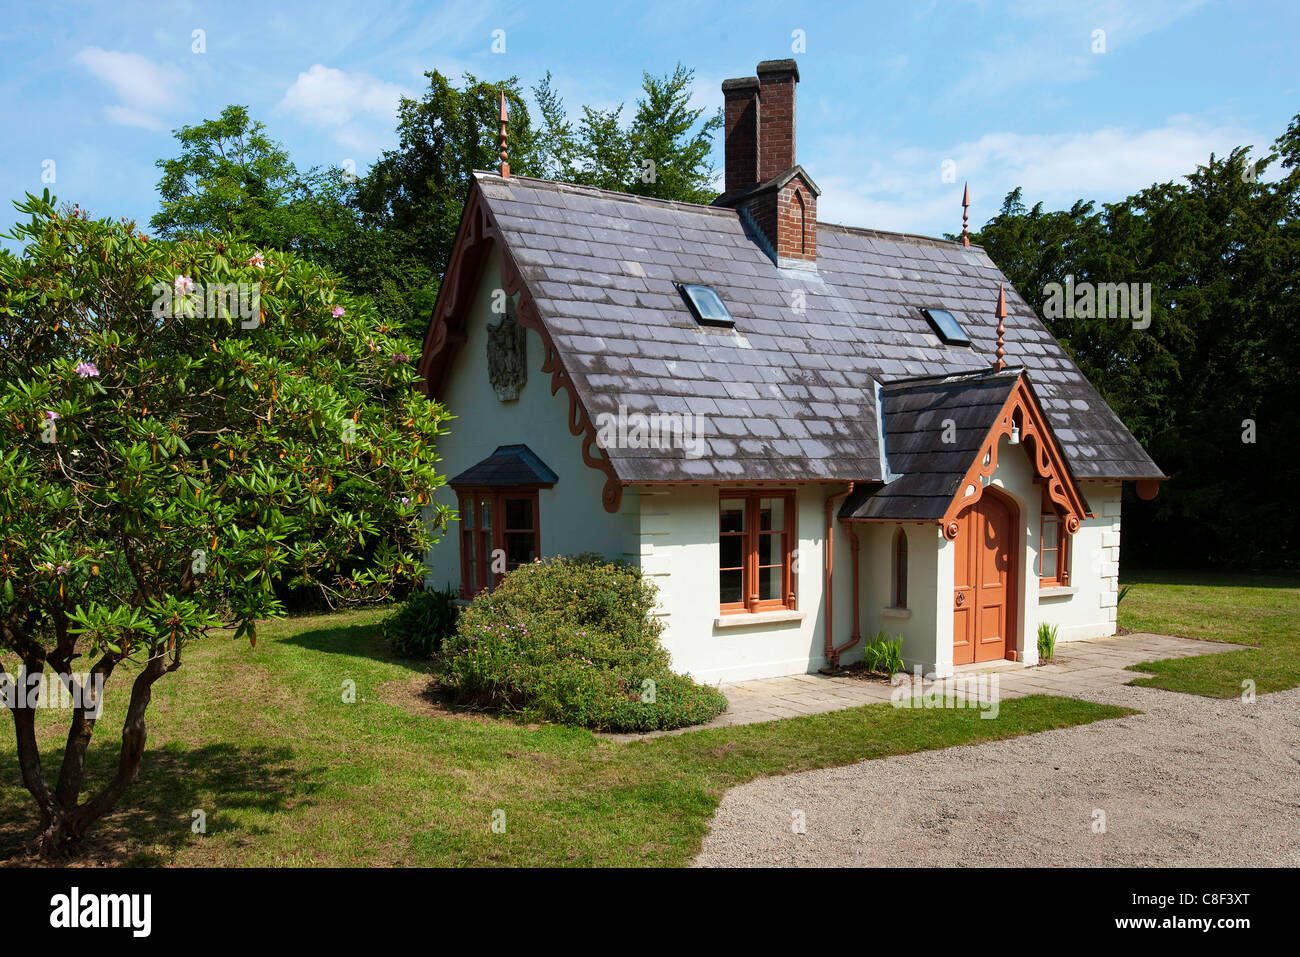 Traditional House Plans One Story Small Irish Cottage Situated In A Wooden Area Stock Photo